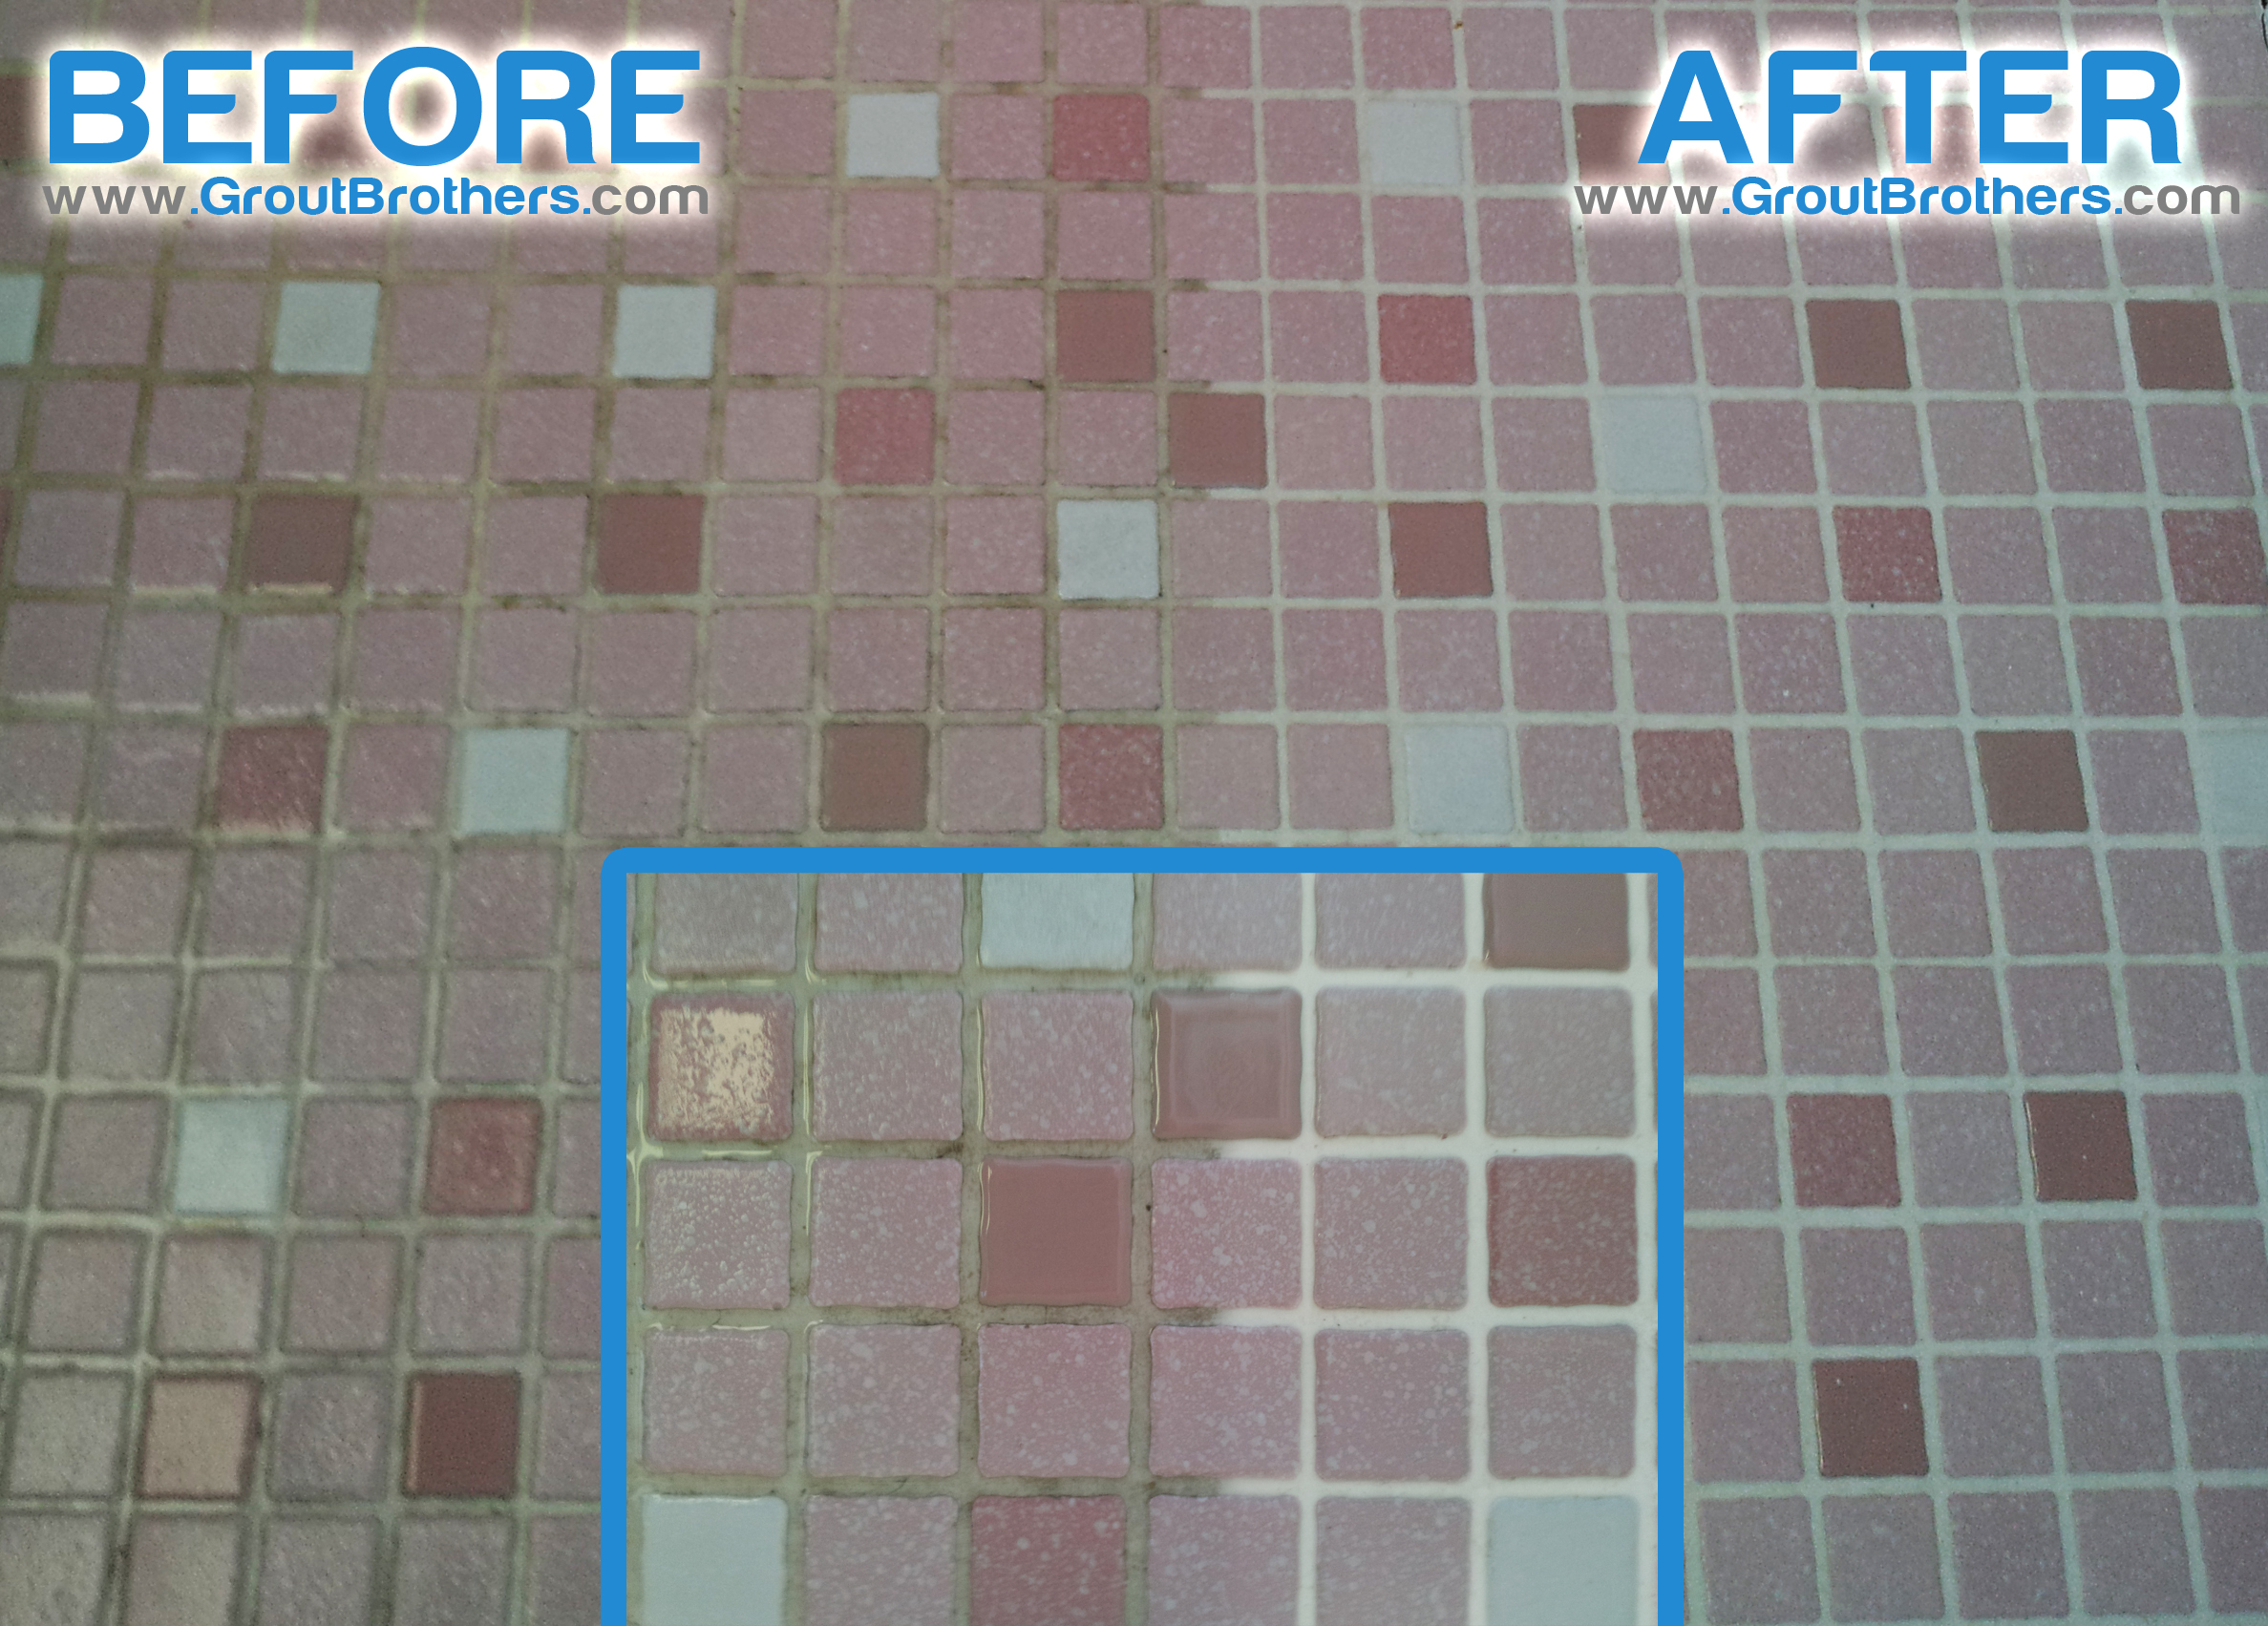 Professional tile and grout cleaning englewood fl grout brothers tile and grout cleaning dailygadgetfo Choice Image